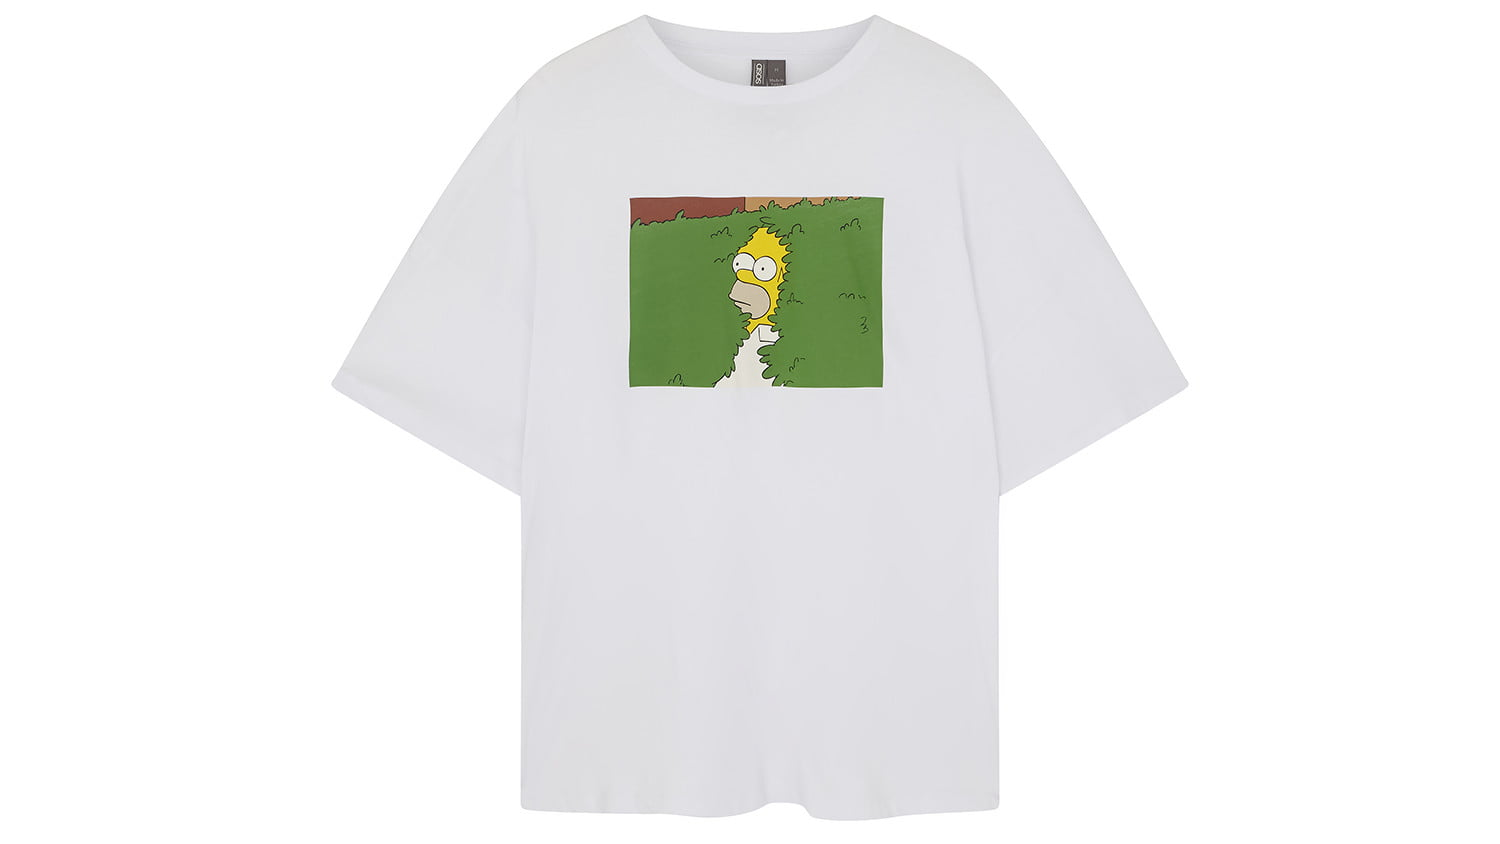 asos x the simpsons collection homerteewhite